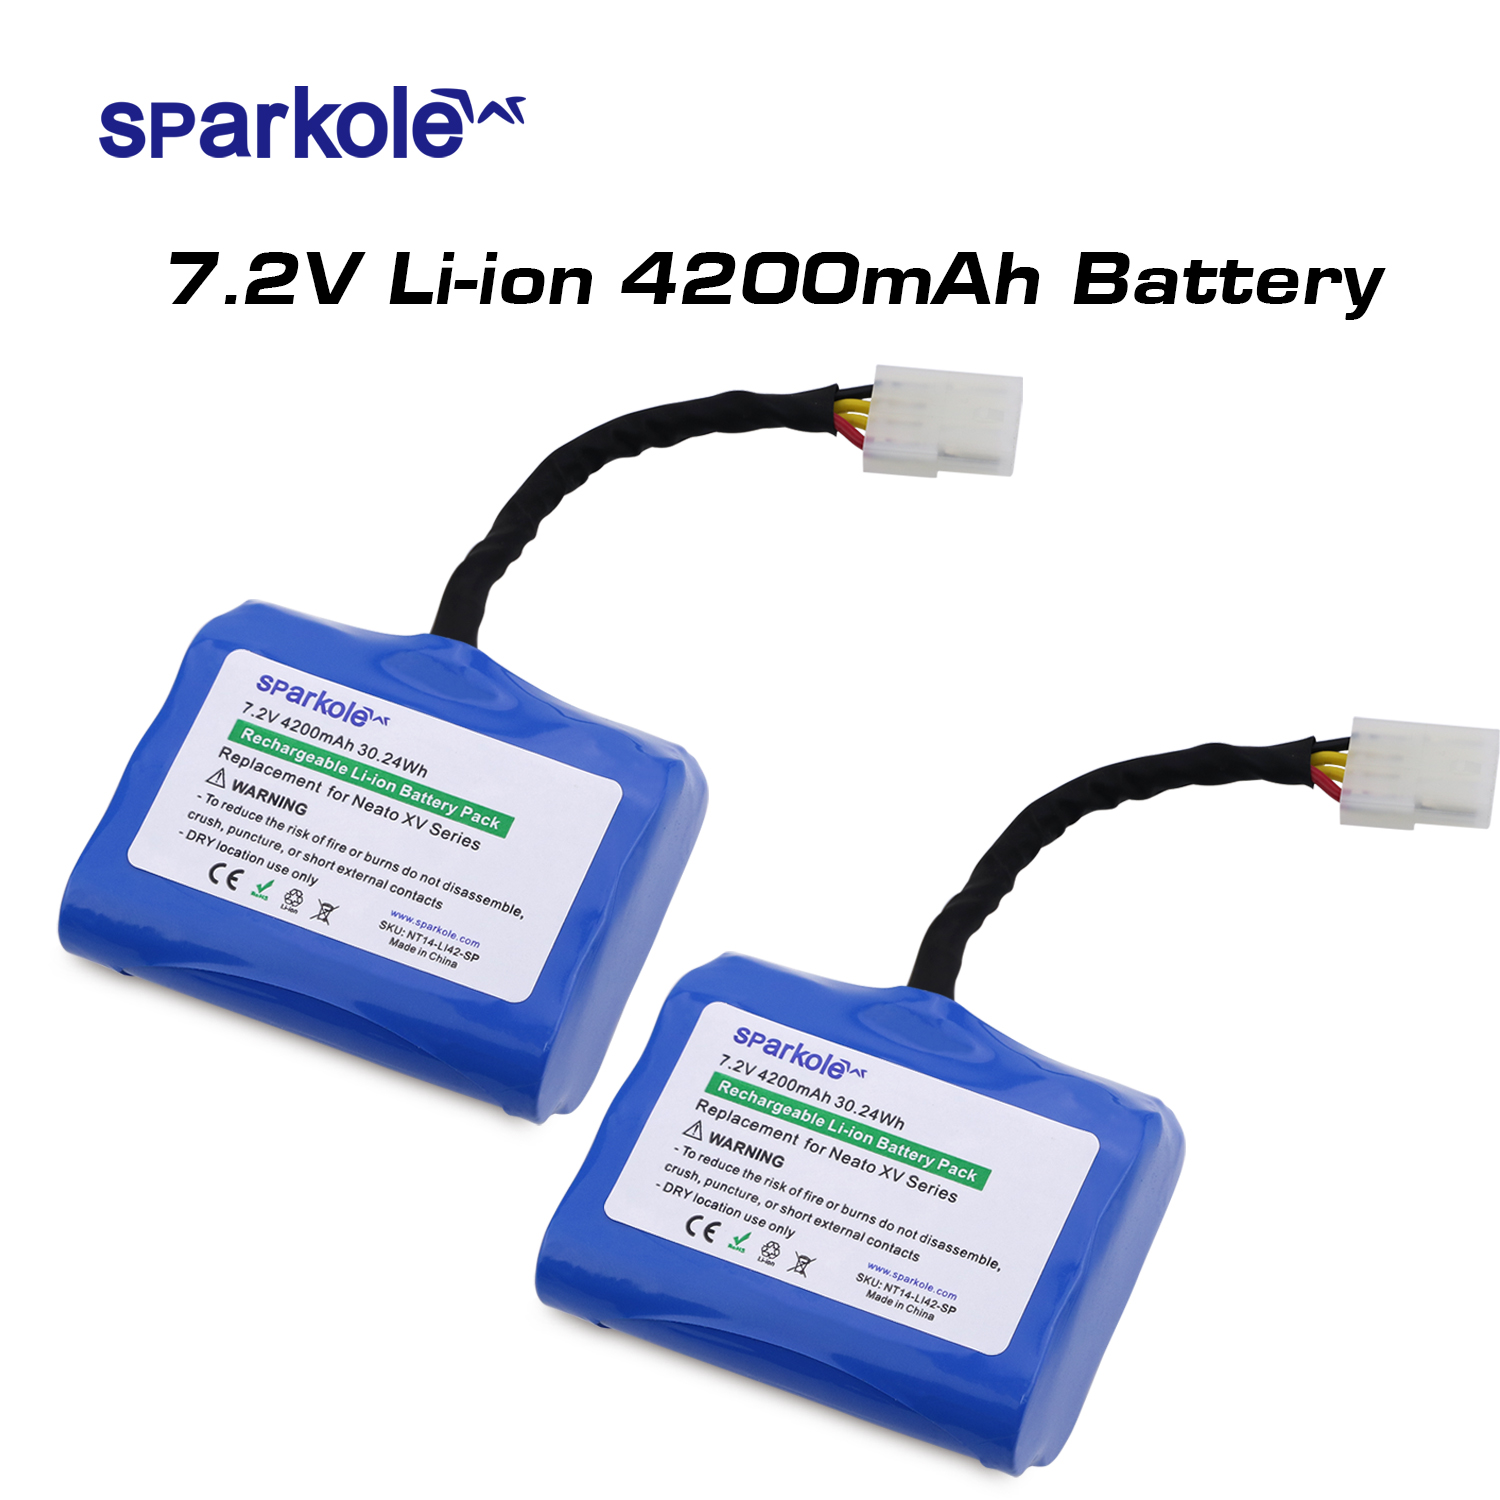 Sparkole 4200mAh Lithium Battery For Neato XV-11 XV-12 XV-14 XV-15 XV-25 XV-21 XV Signature Pro Robotic Vacuum Cleaner 2Pack UL